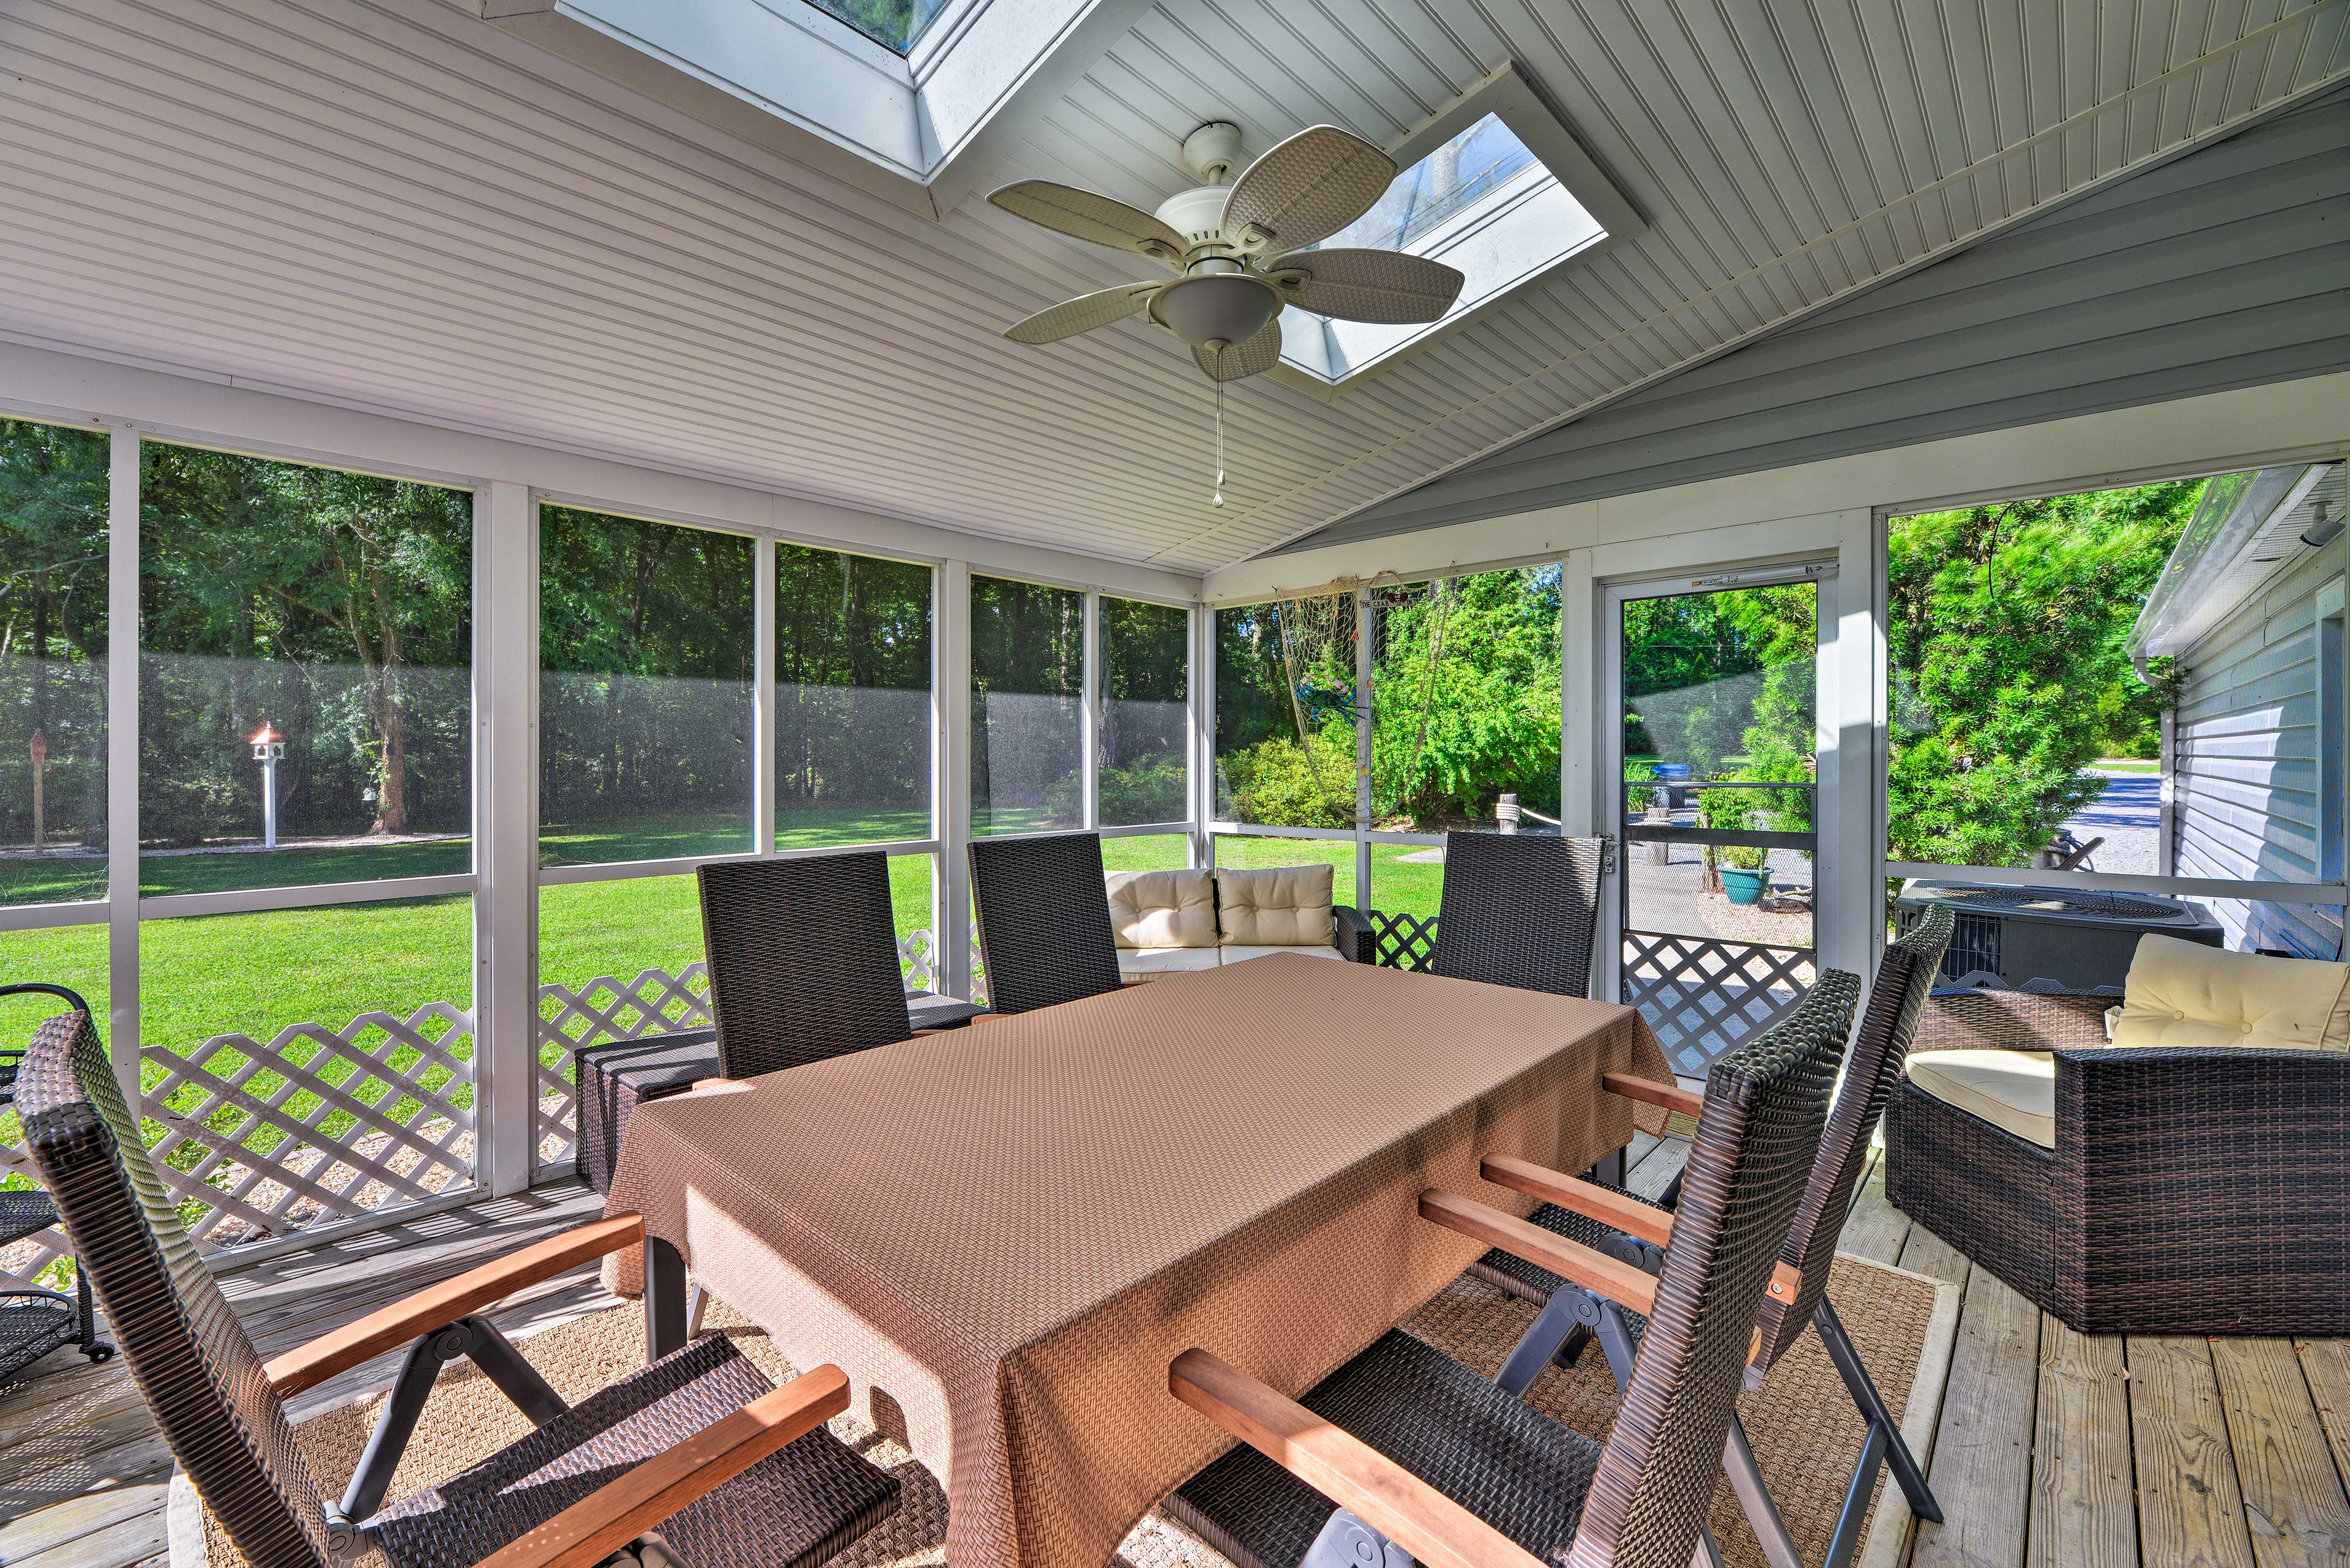 Enjoy breakfast and sip your morning coffee out on the porch.